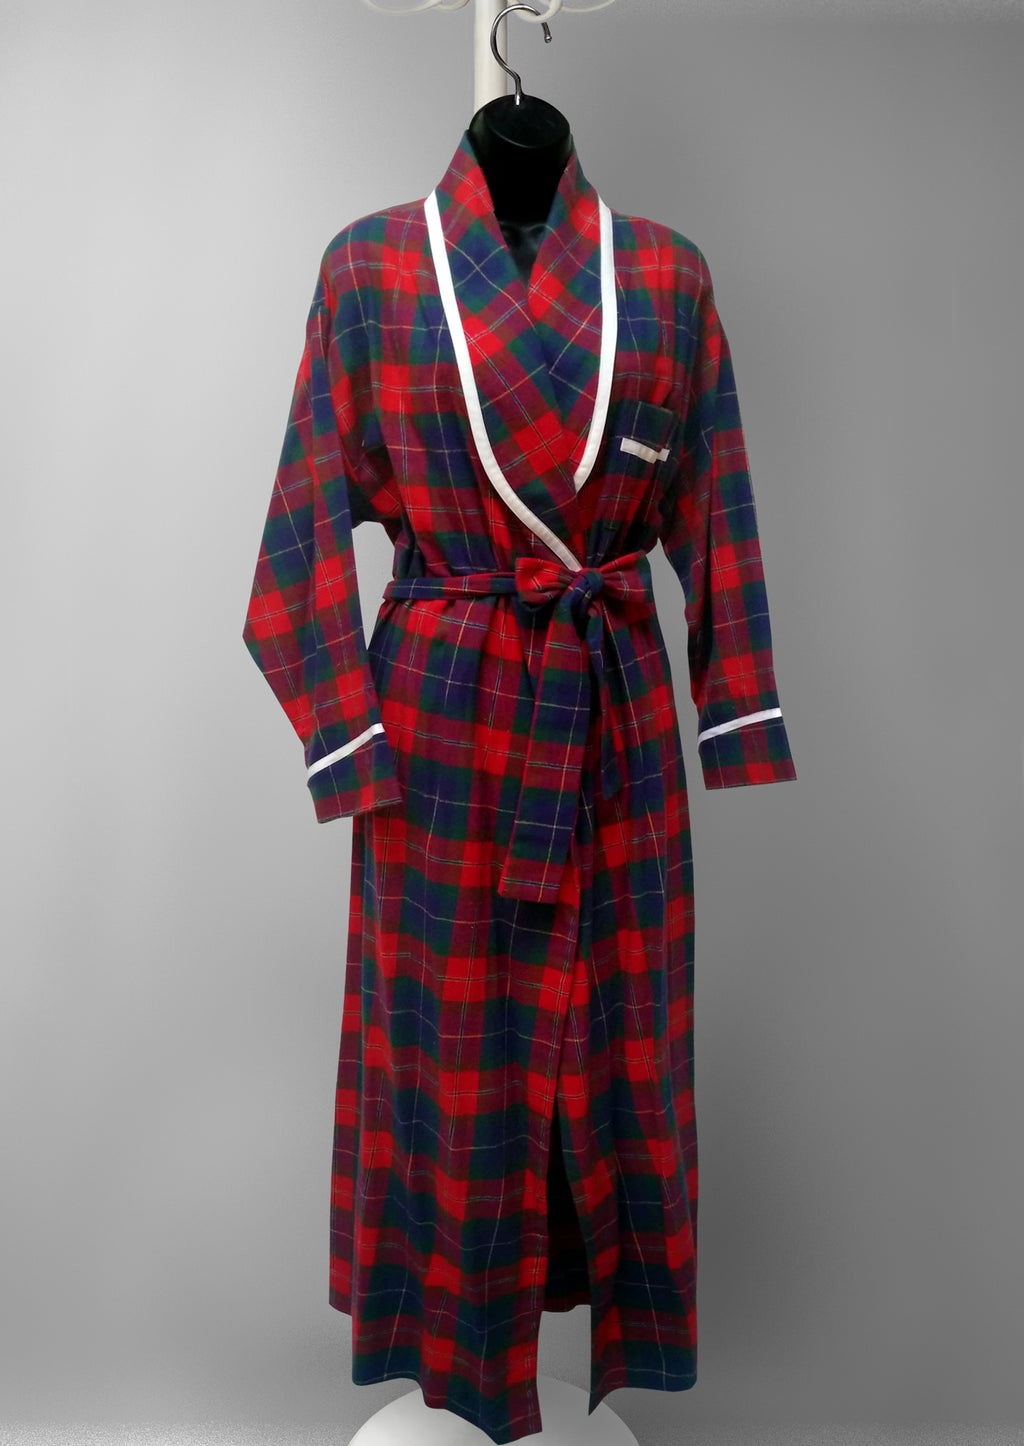 39901 Flannel printed Robe-final sale-no returns